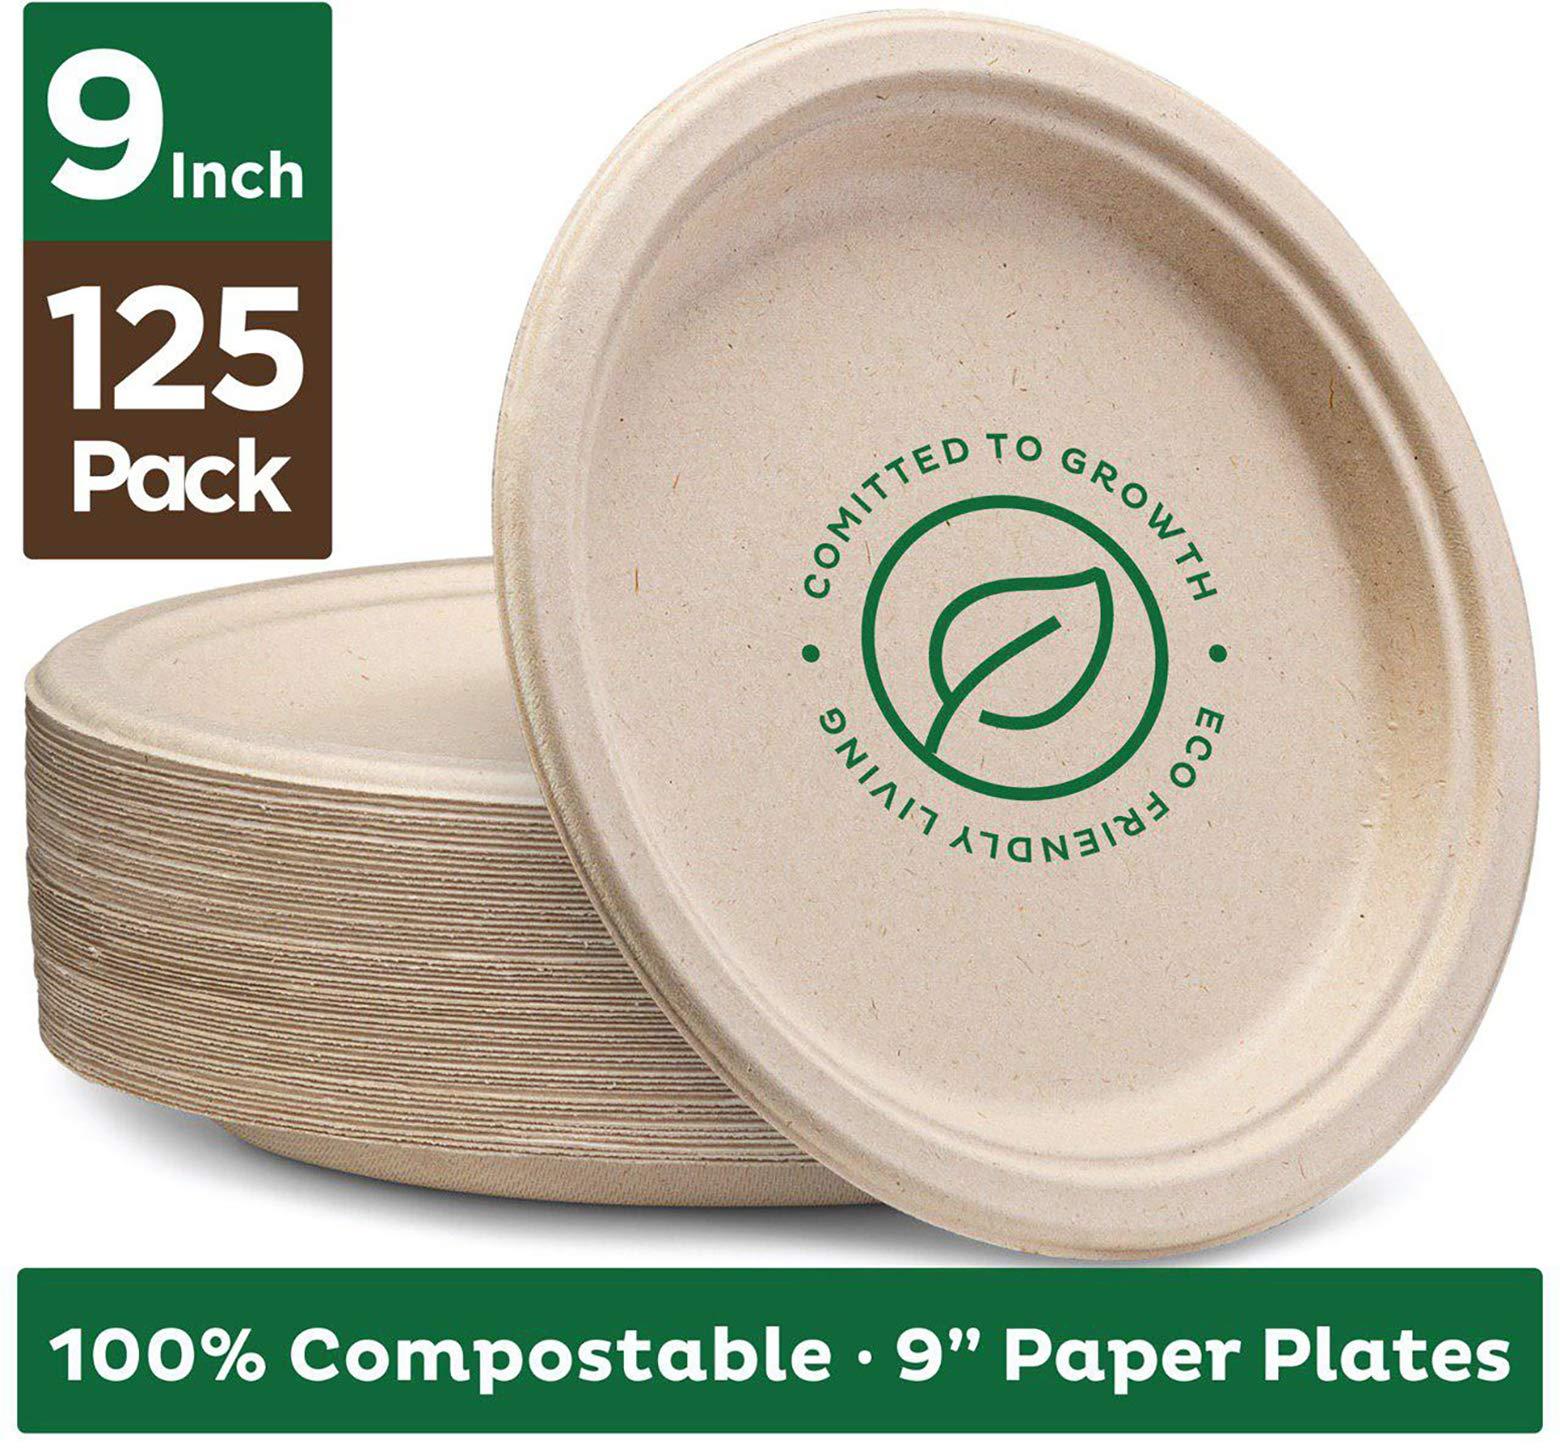 Stack Man 100% Compostable 9'' Paper Plates [125-Pack] Heavy-Duty Quality Natural Disposable Bagasse, Eco-Friendly Made of Sugar Cane Fibers, 9 inch, Brown by Stack Man